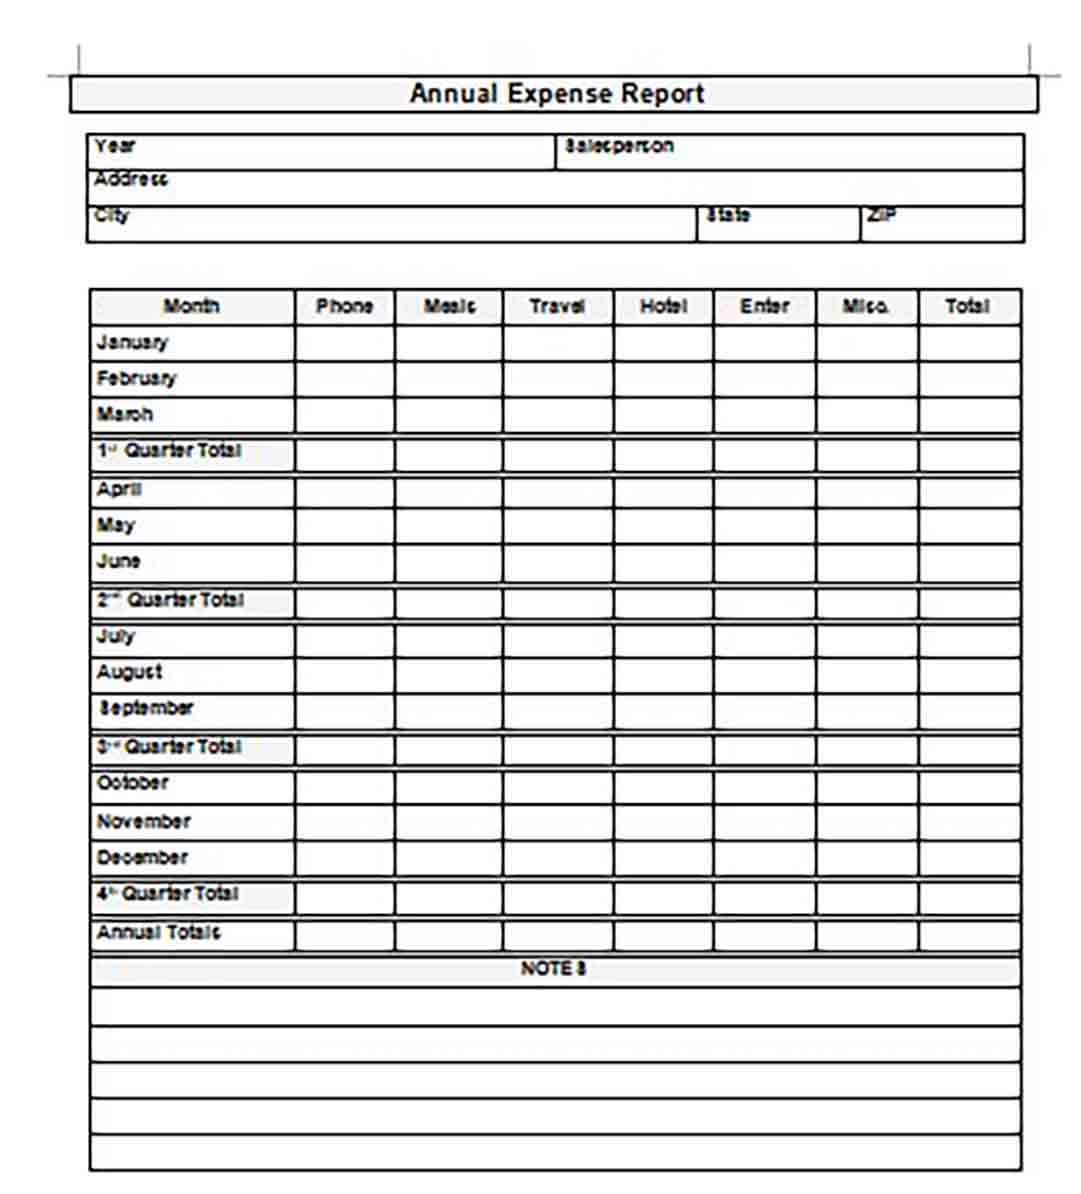 Annual Expense Report templates